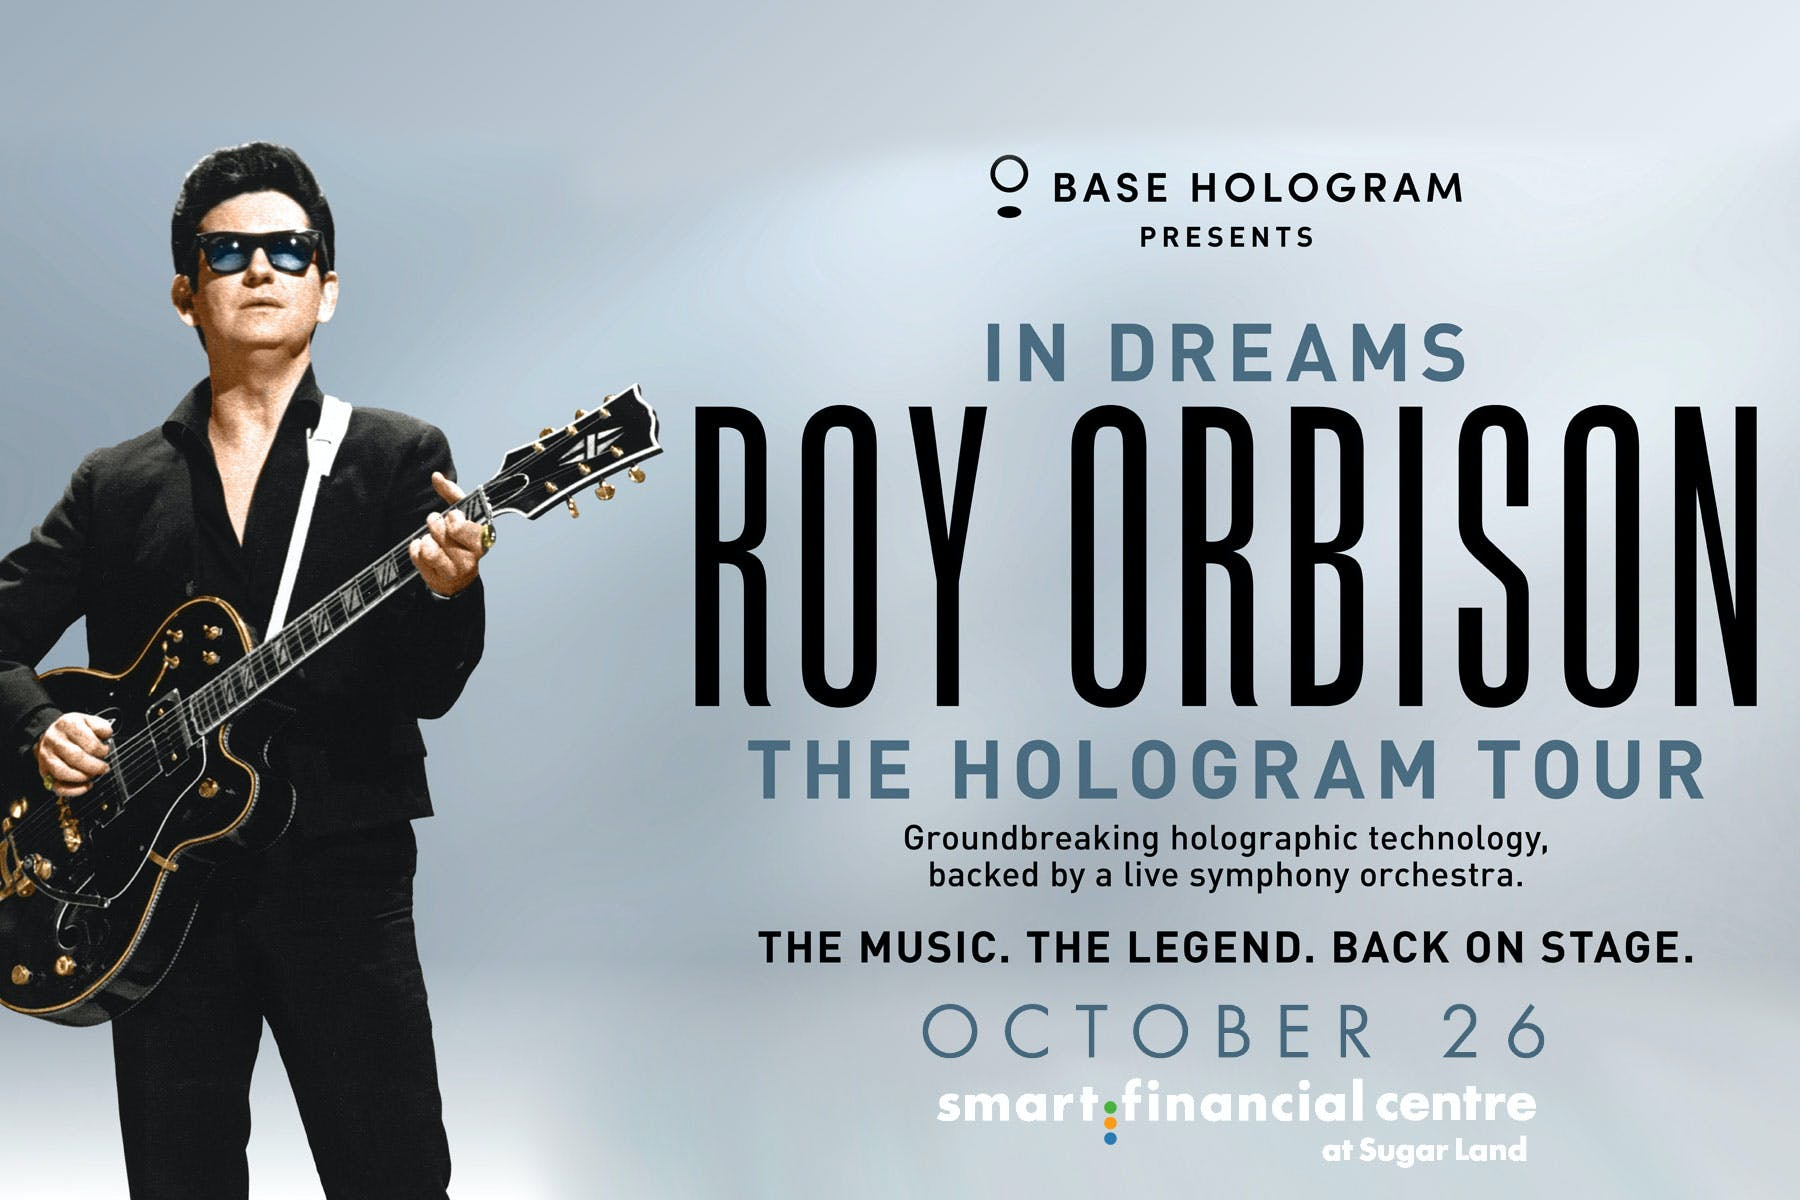 roy-orbison-hologram-tour-2018-sugar-land-texas